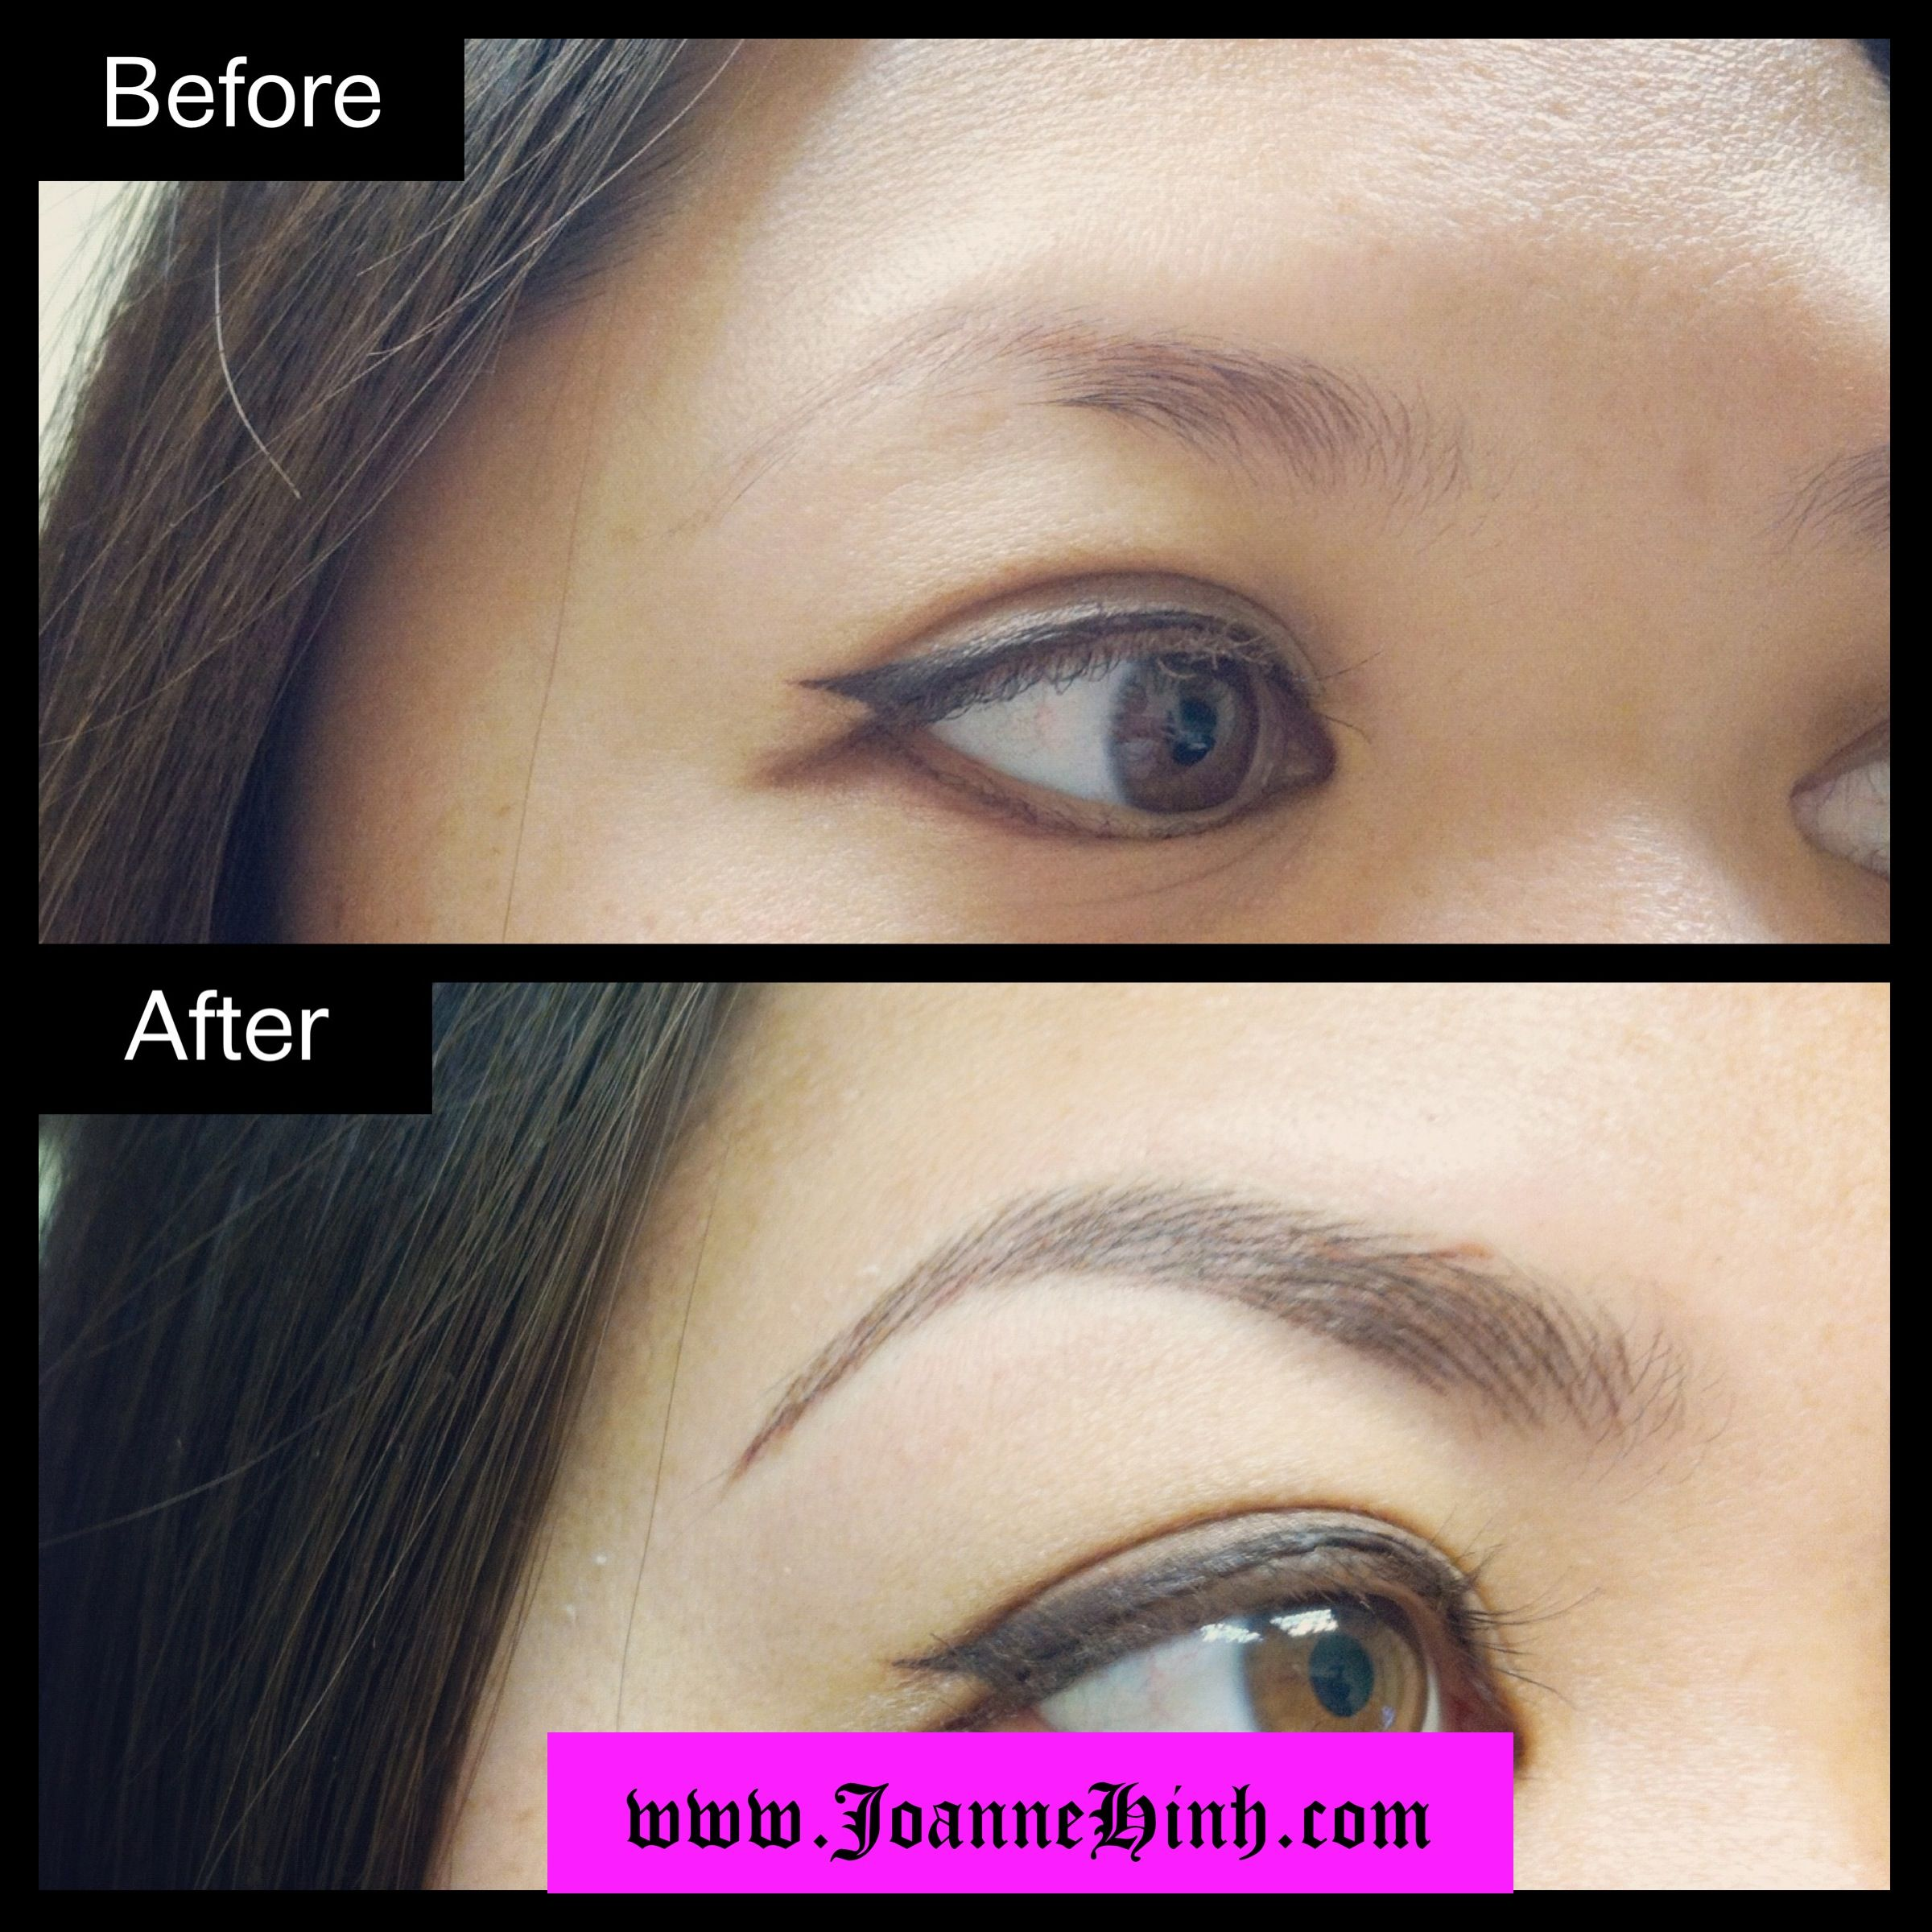 Hairstroke Eyebrow Embroidery by Joanne Hinh. Brow